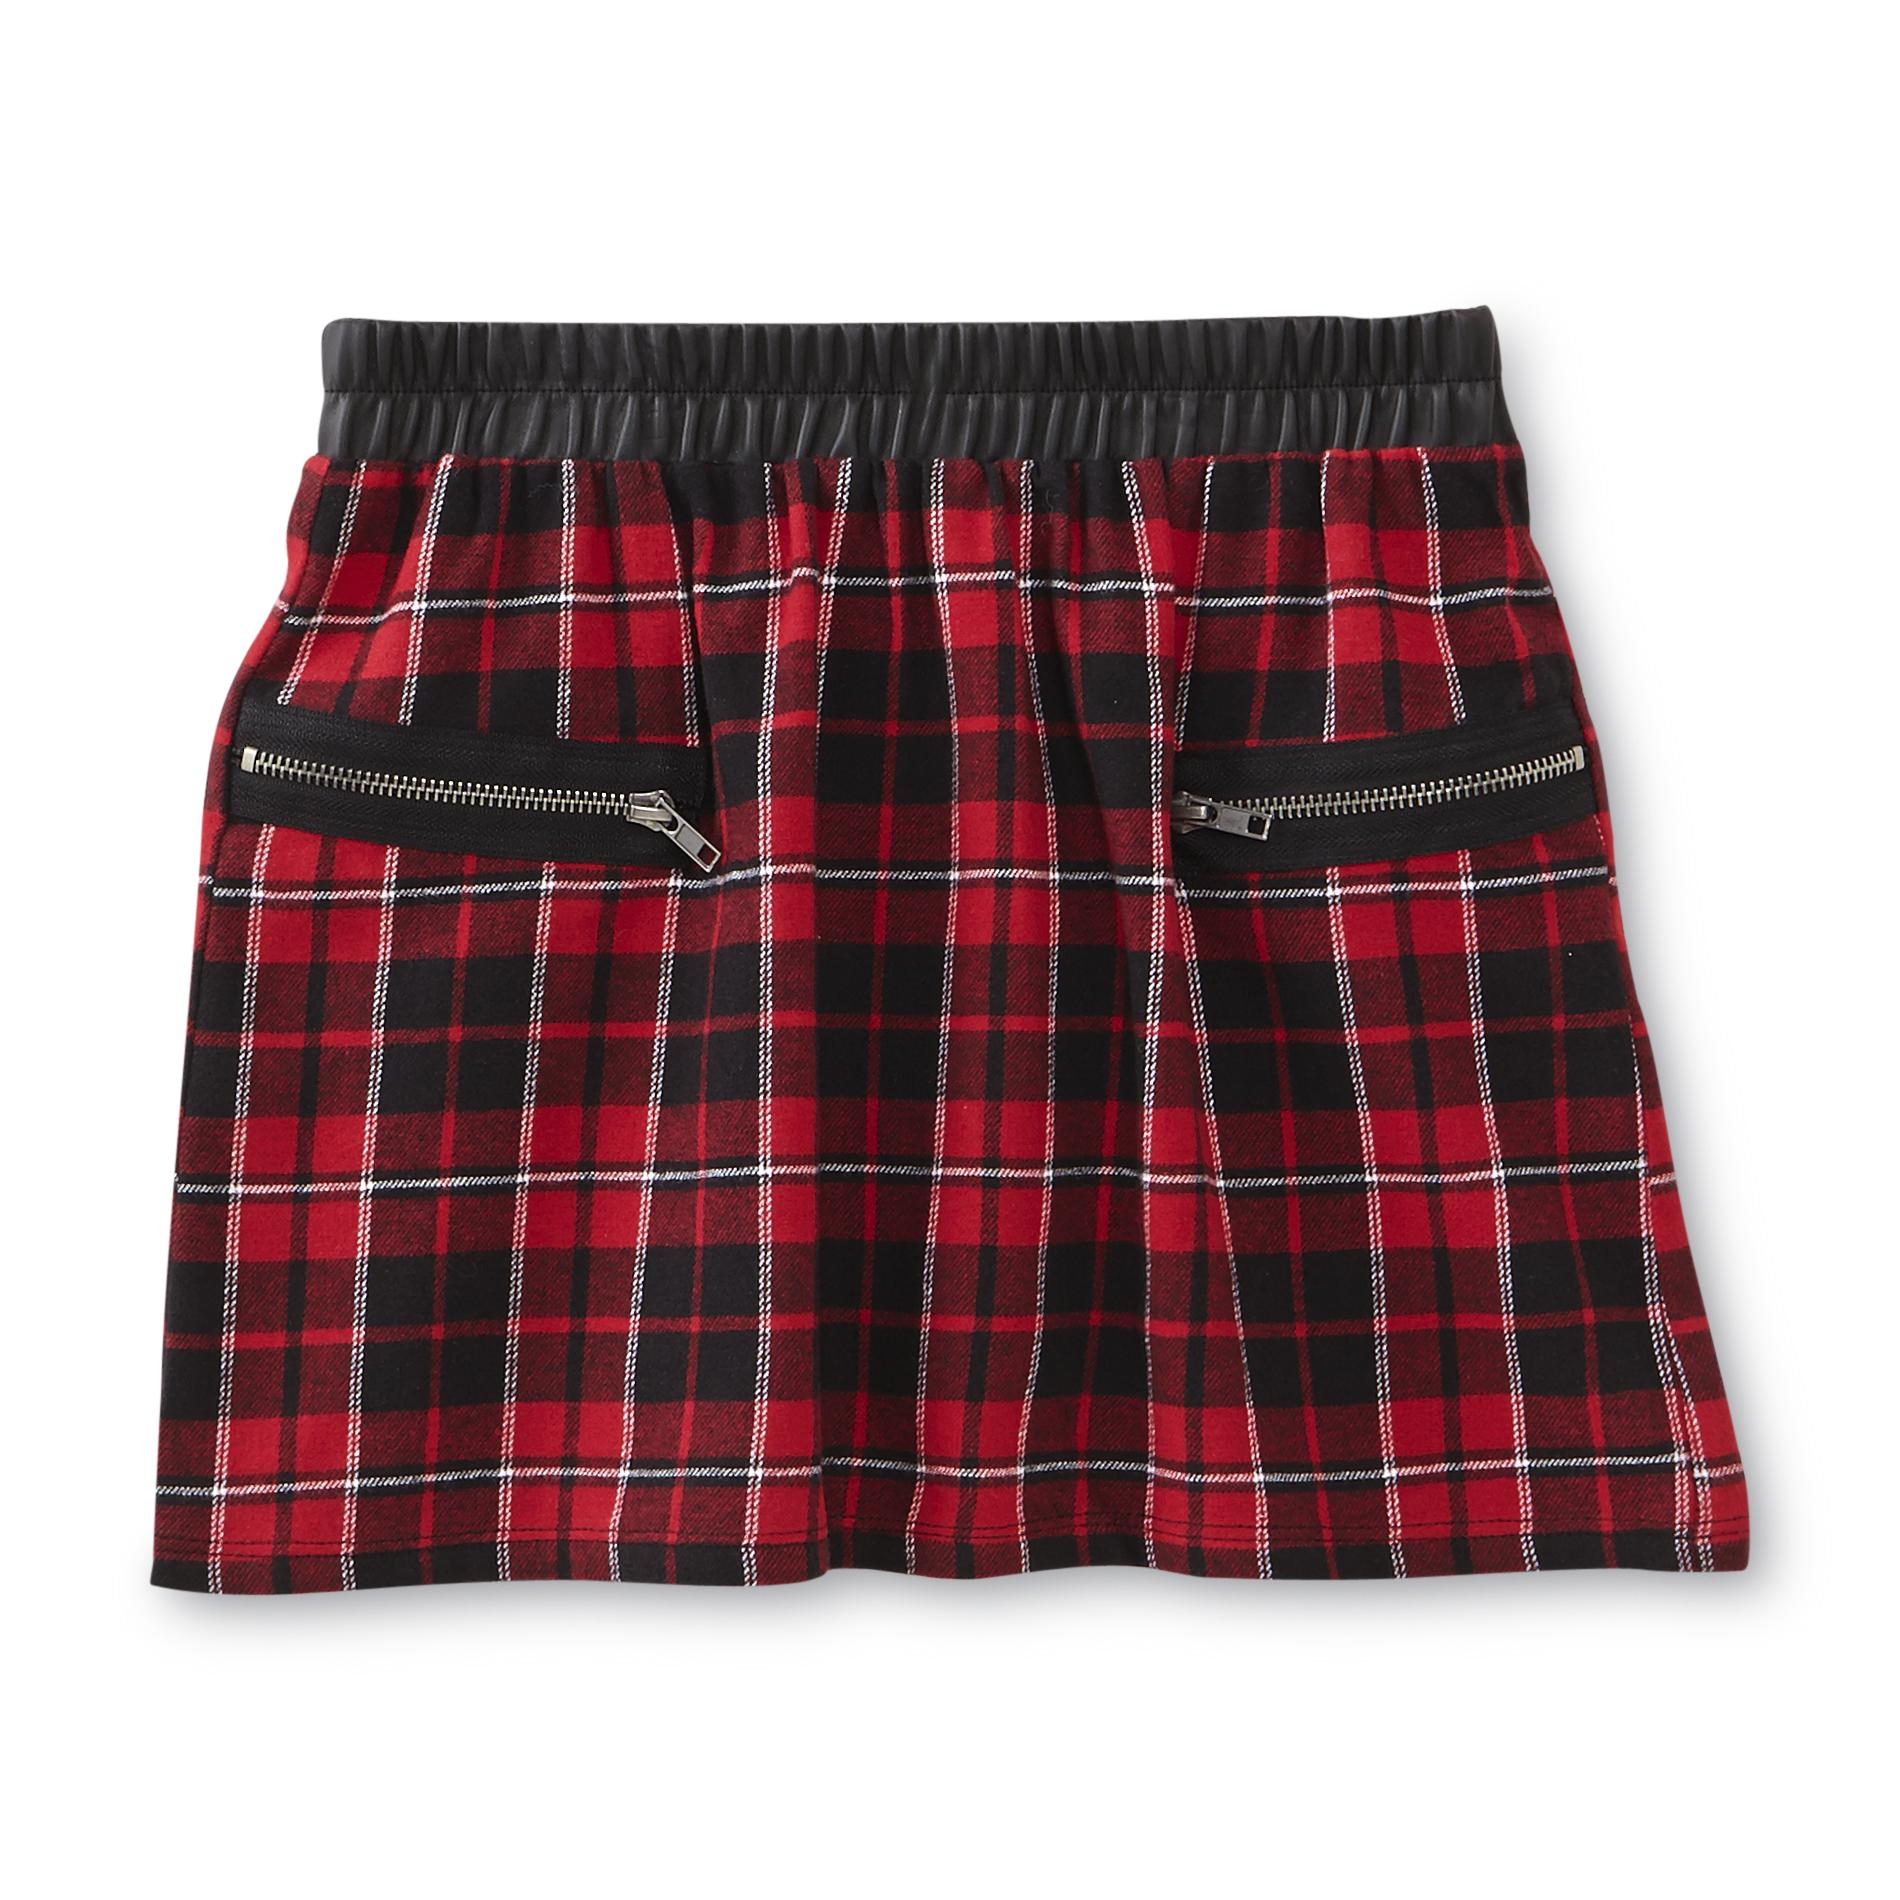 School Skirts Kmart Girls School Skirt Kmart